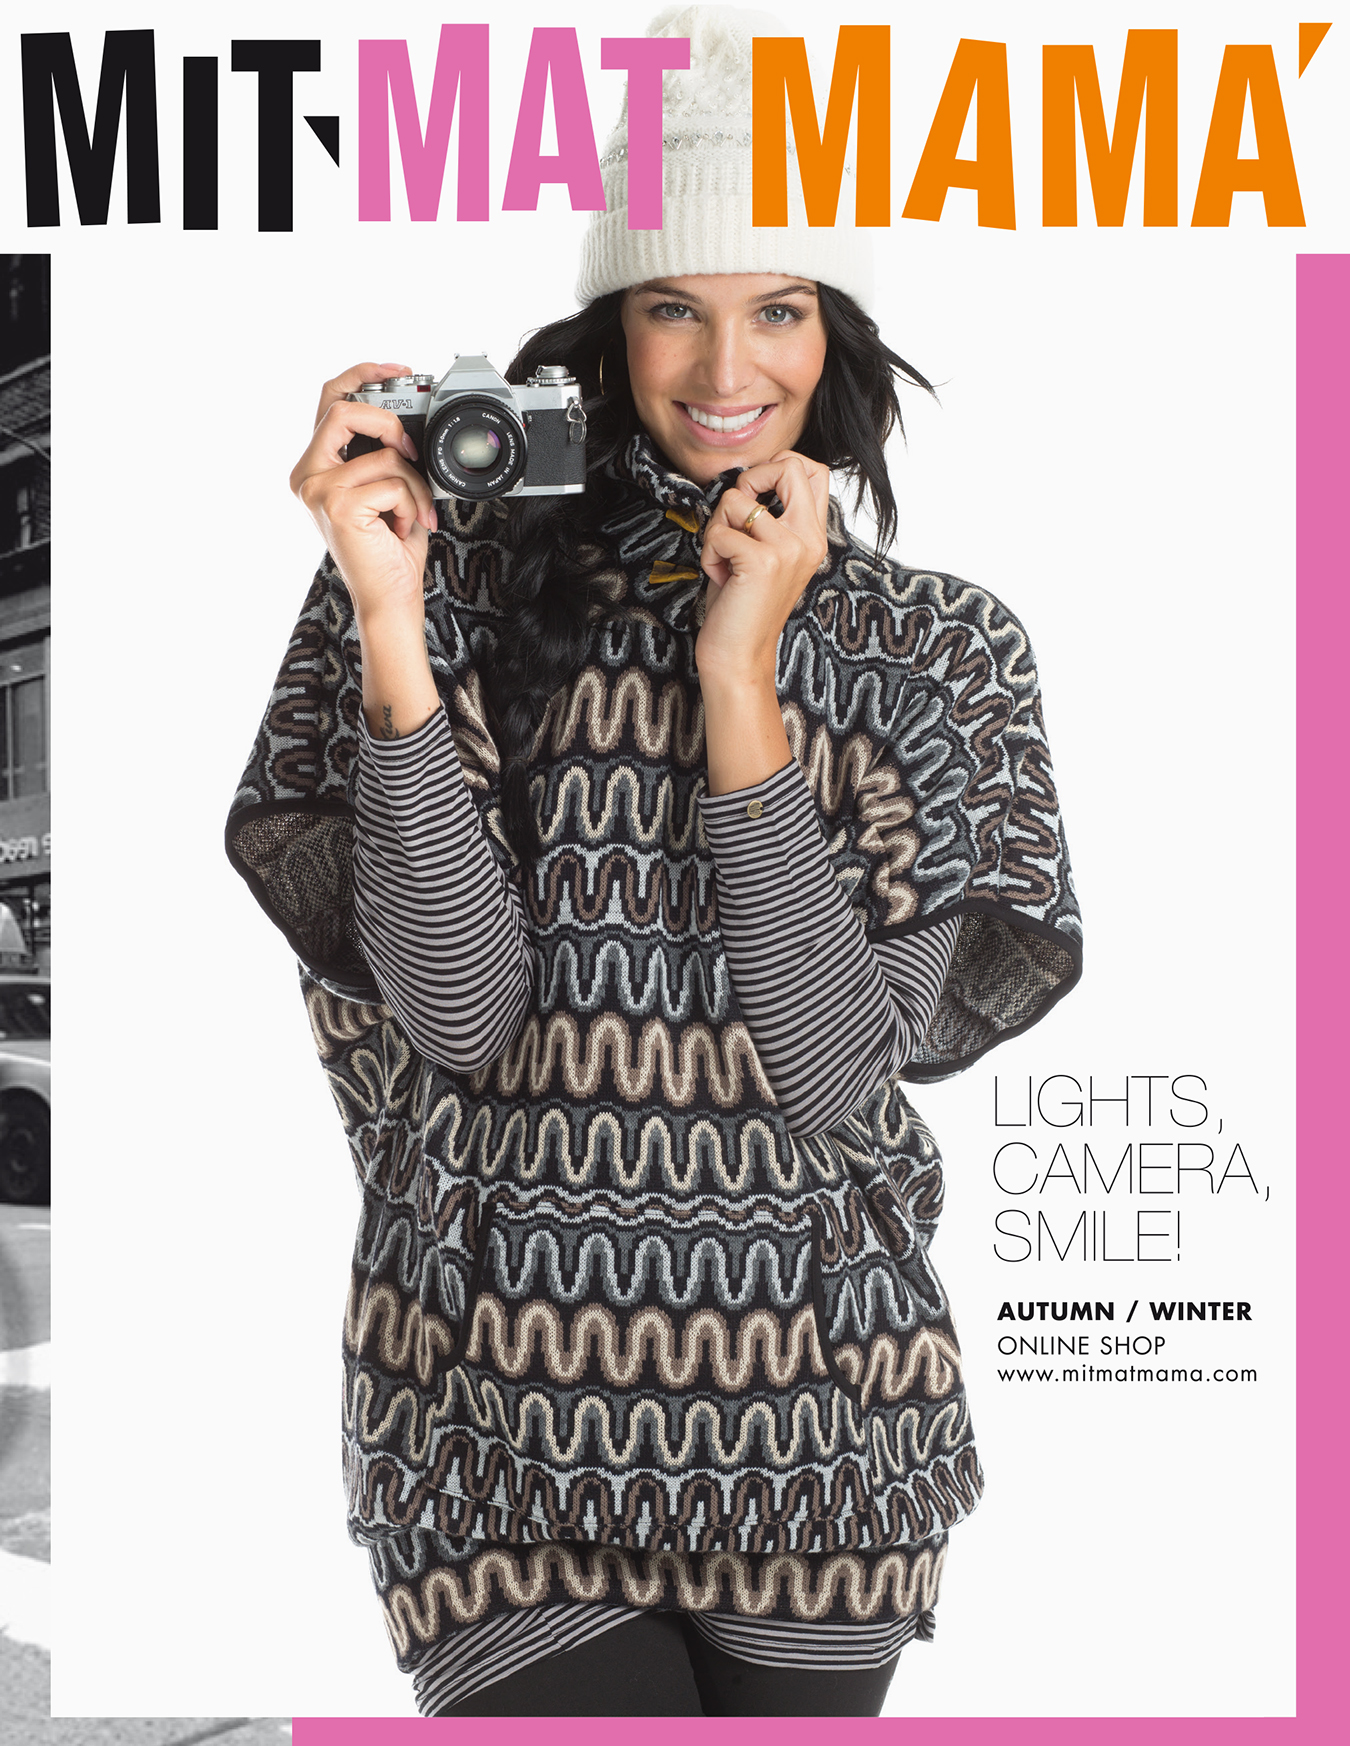 """Mit Mat Mama"" Season Catalogue"